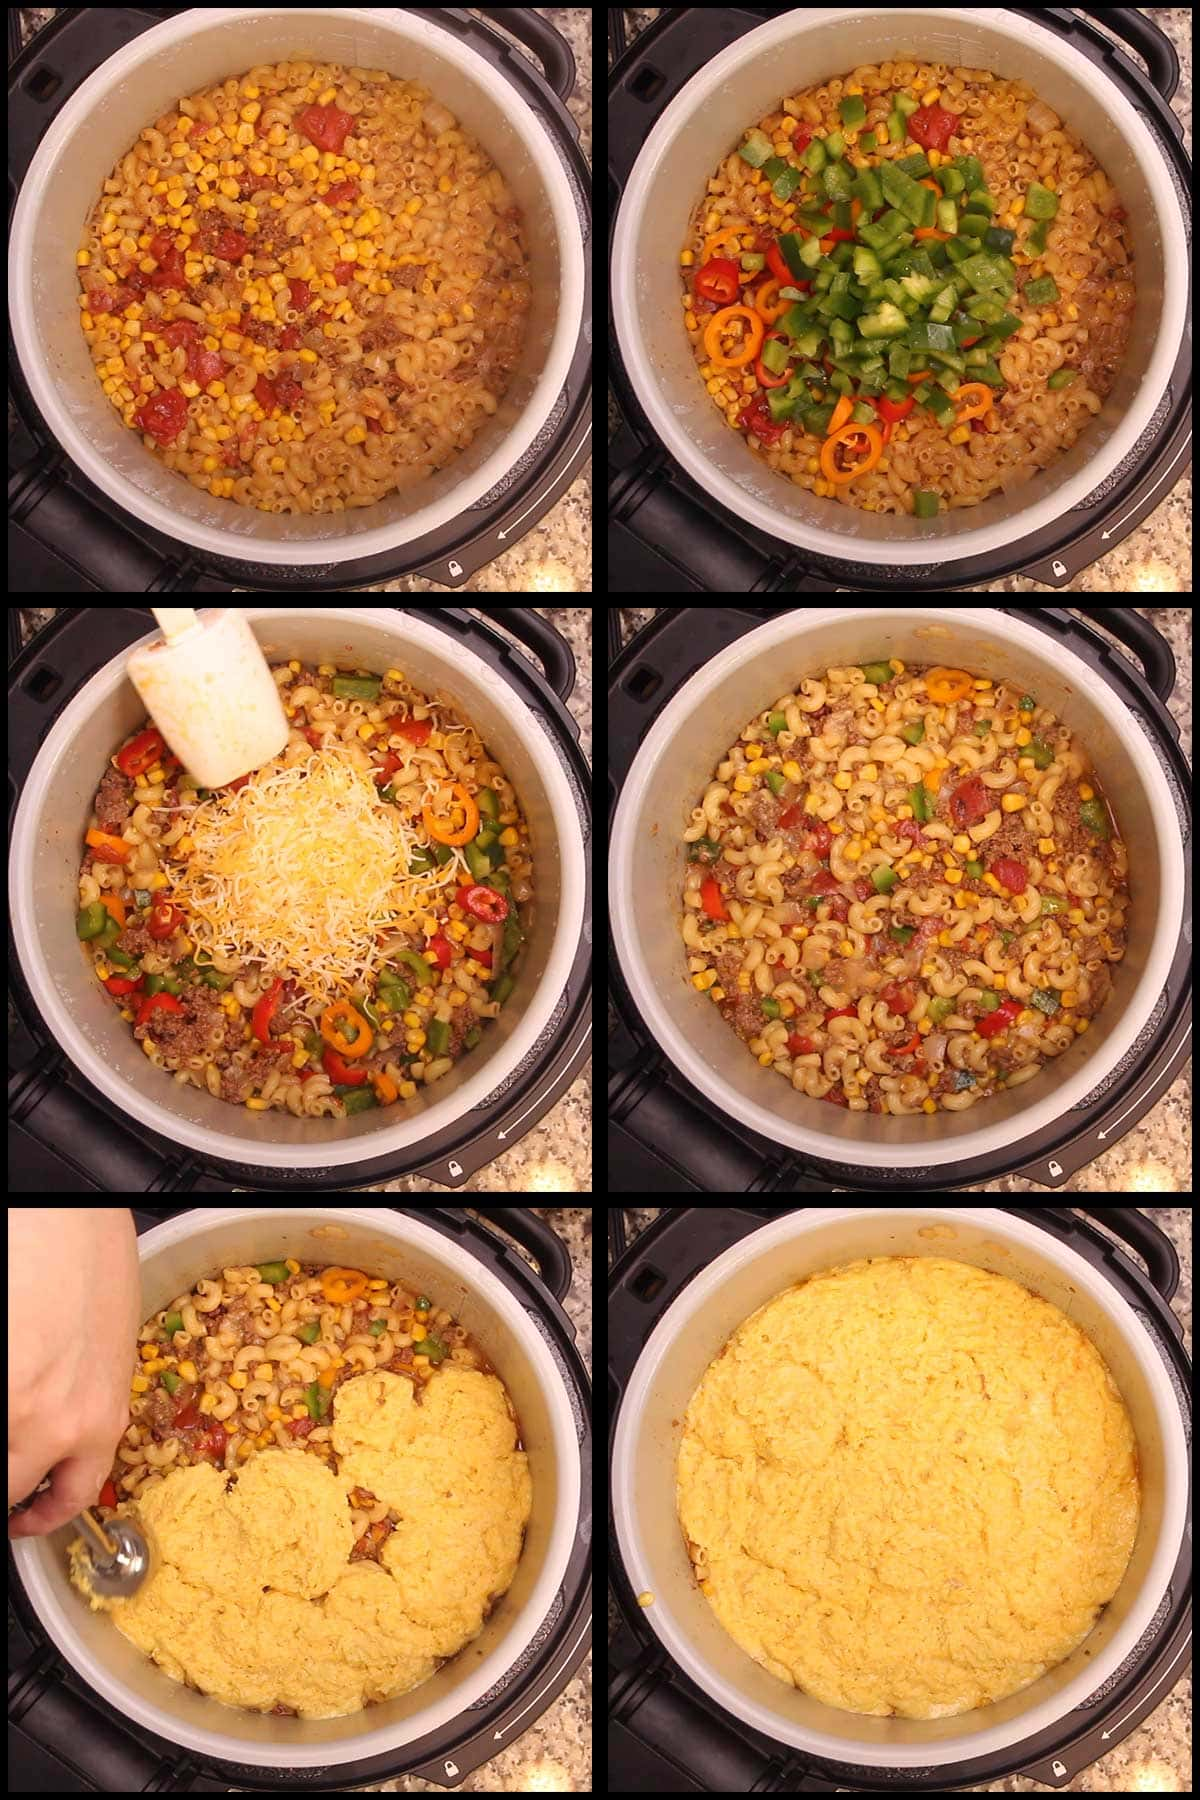 mixing the pepper and cheese into the goulash and scooping on the cornbread topping